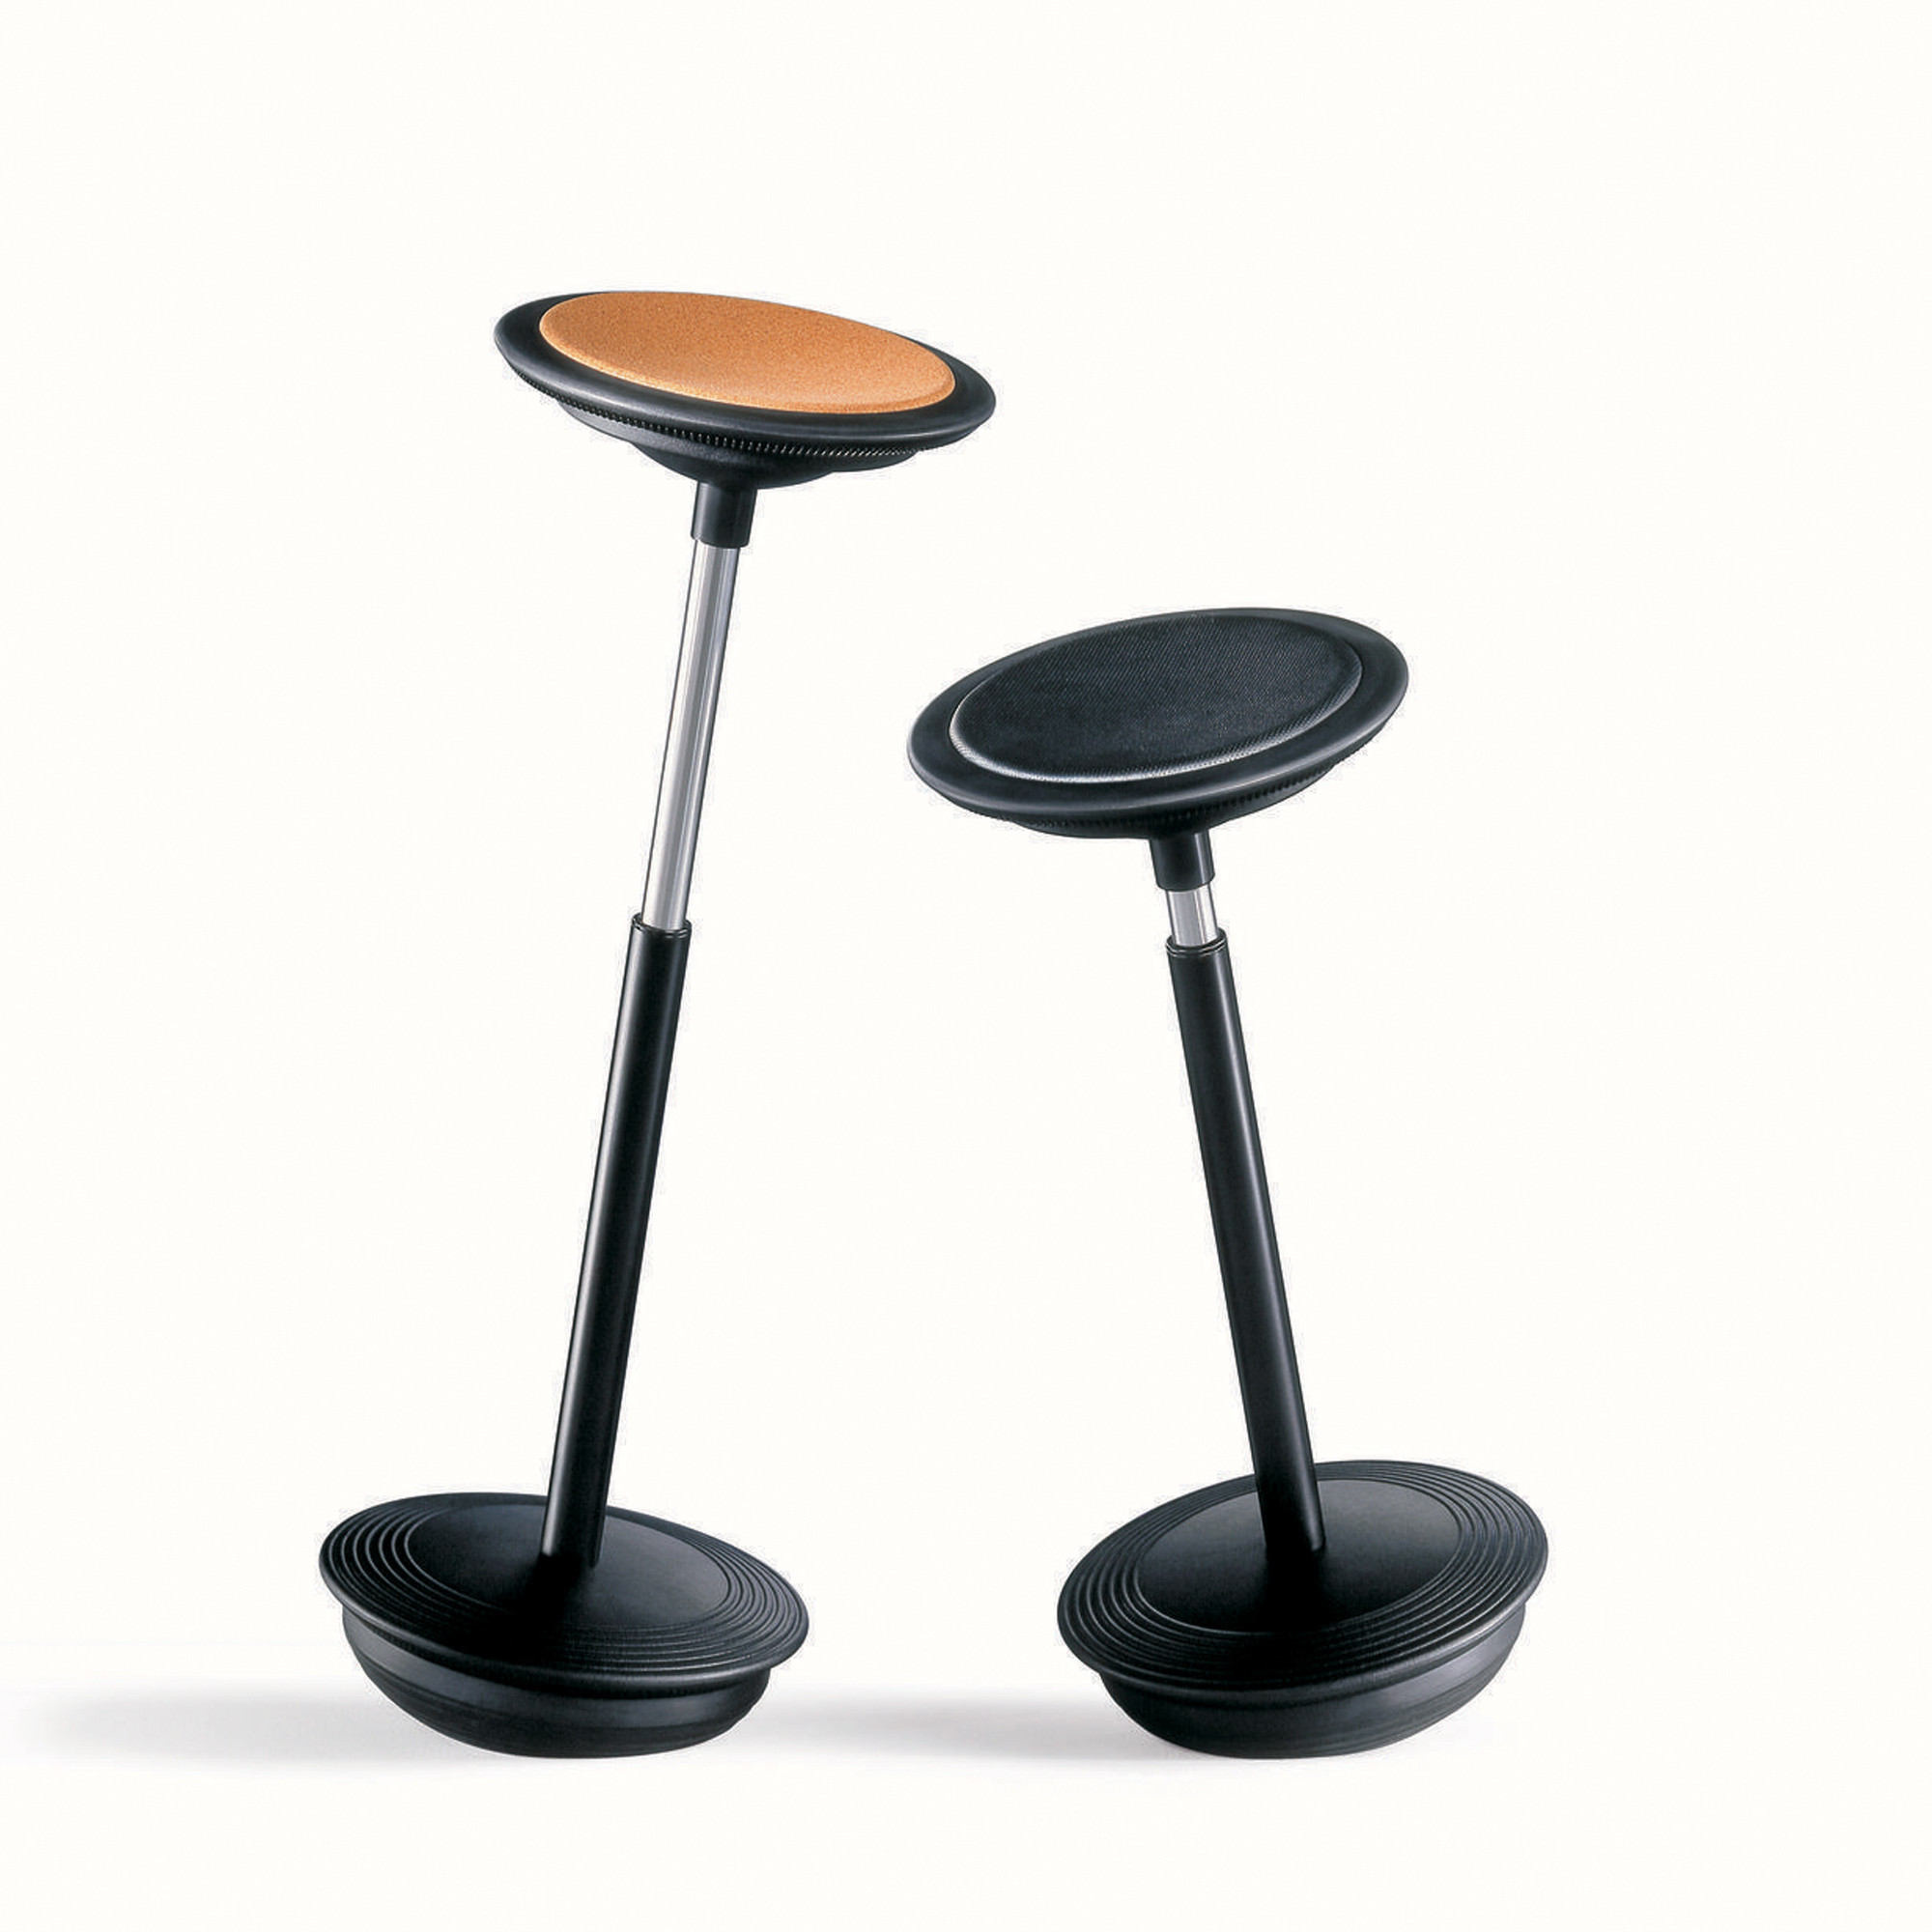 stitz 2 stools leaning aid stools apres furniture. Black Bedroom Furniture Sets. Home Design Ideas